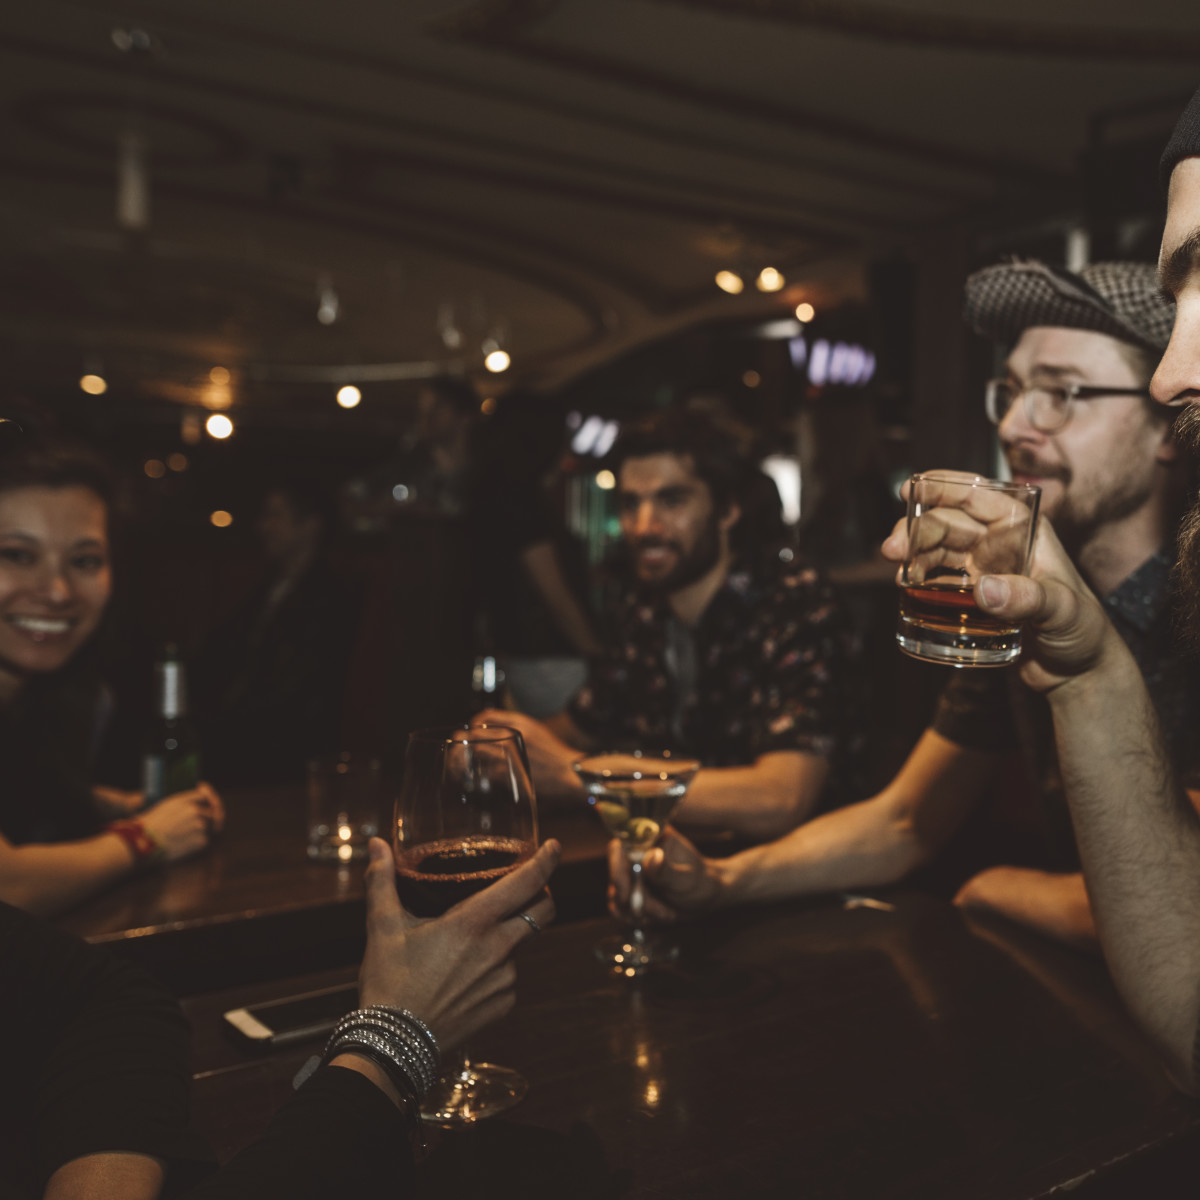 People drinking in a bar